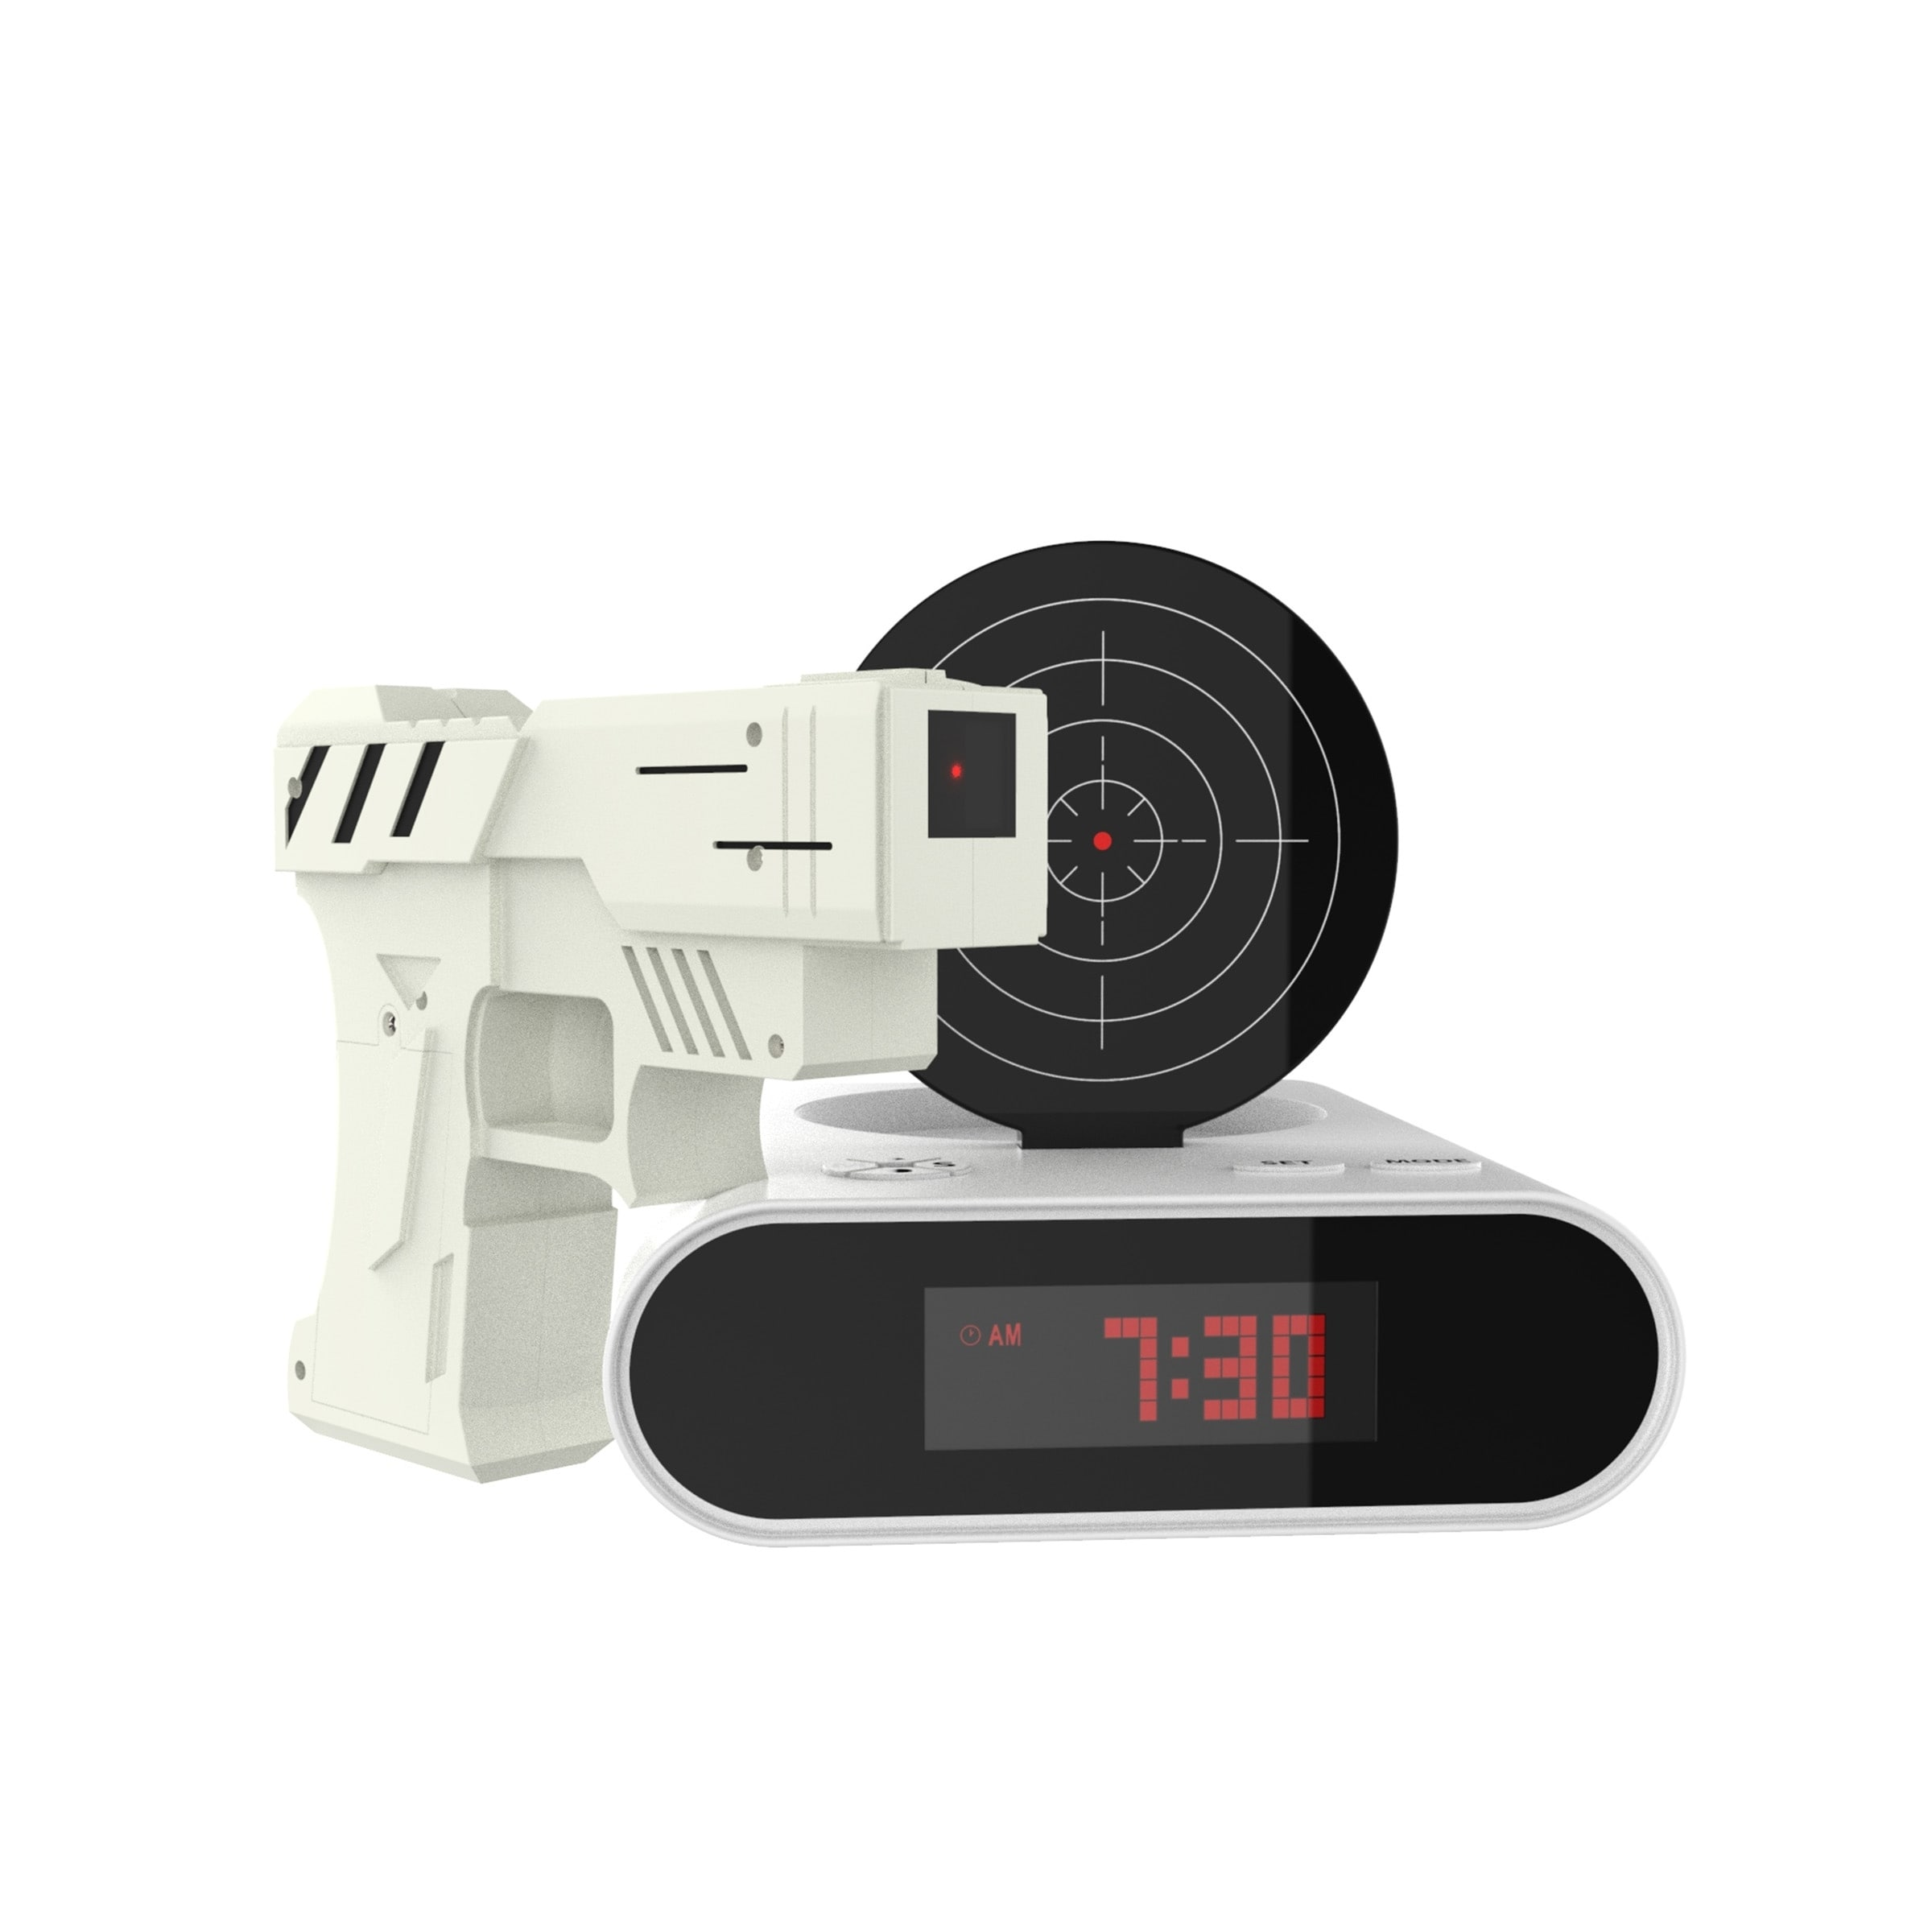 Shop Toy Gun Alarm Clock Game Infrared Laser Activated Snooze Target Record Personalized Tm Games Black White On Sale Free Shipping Orders